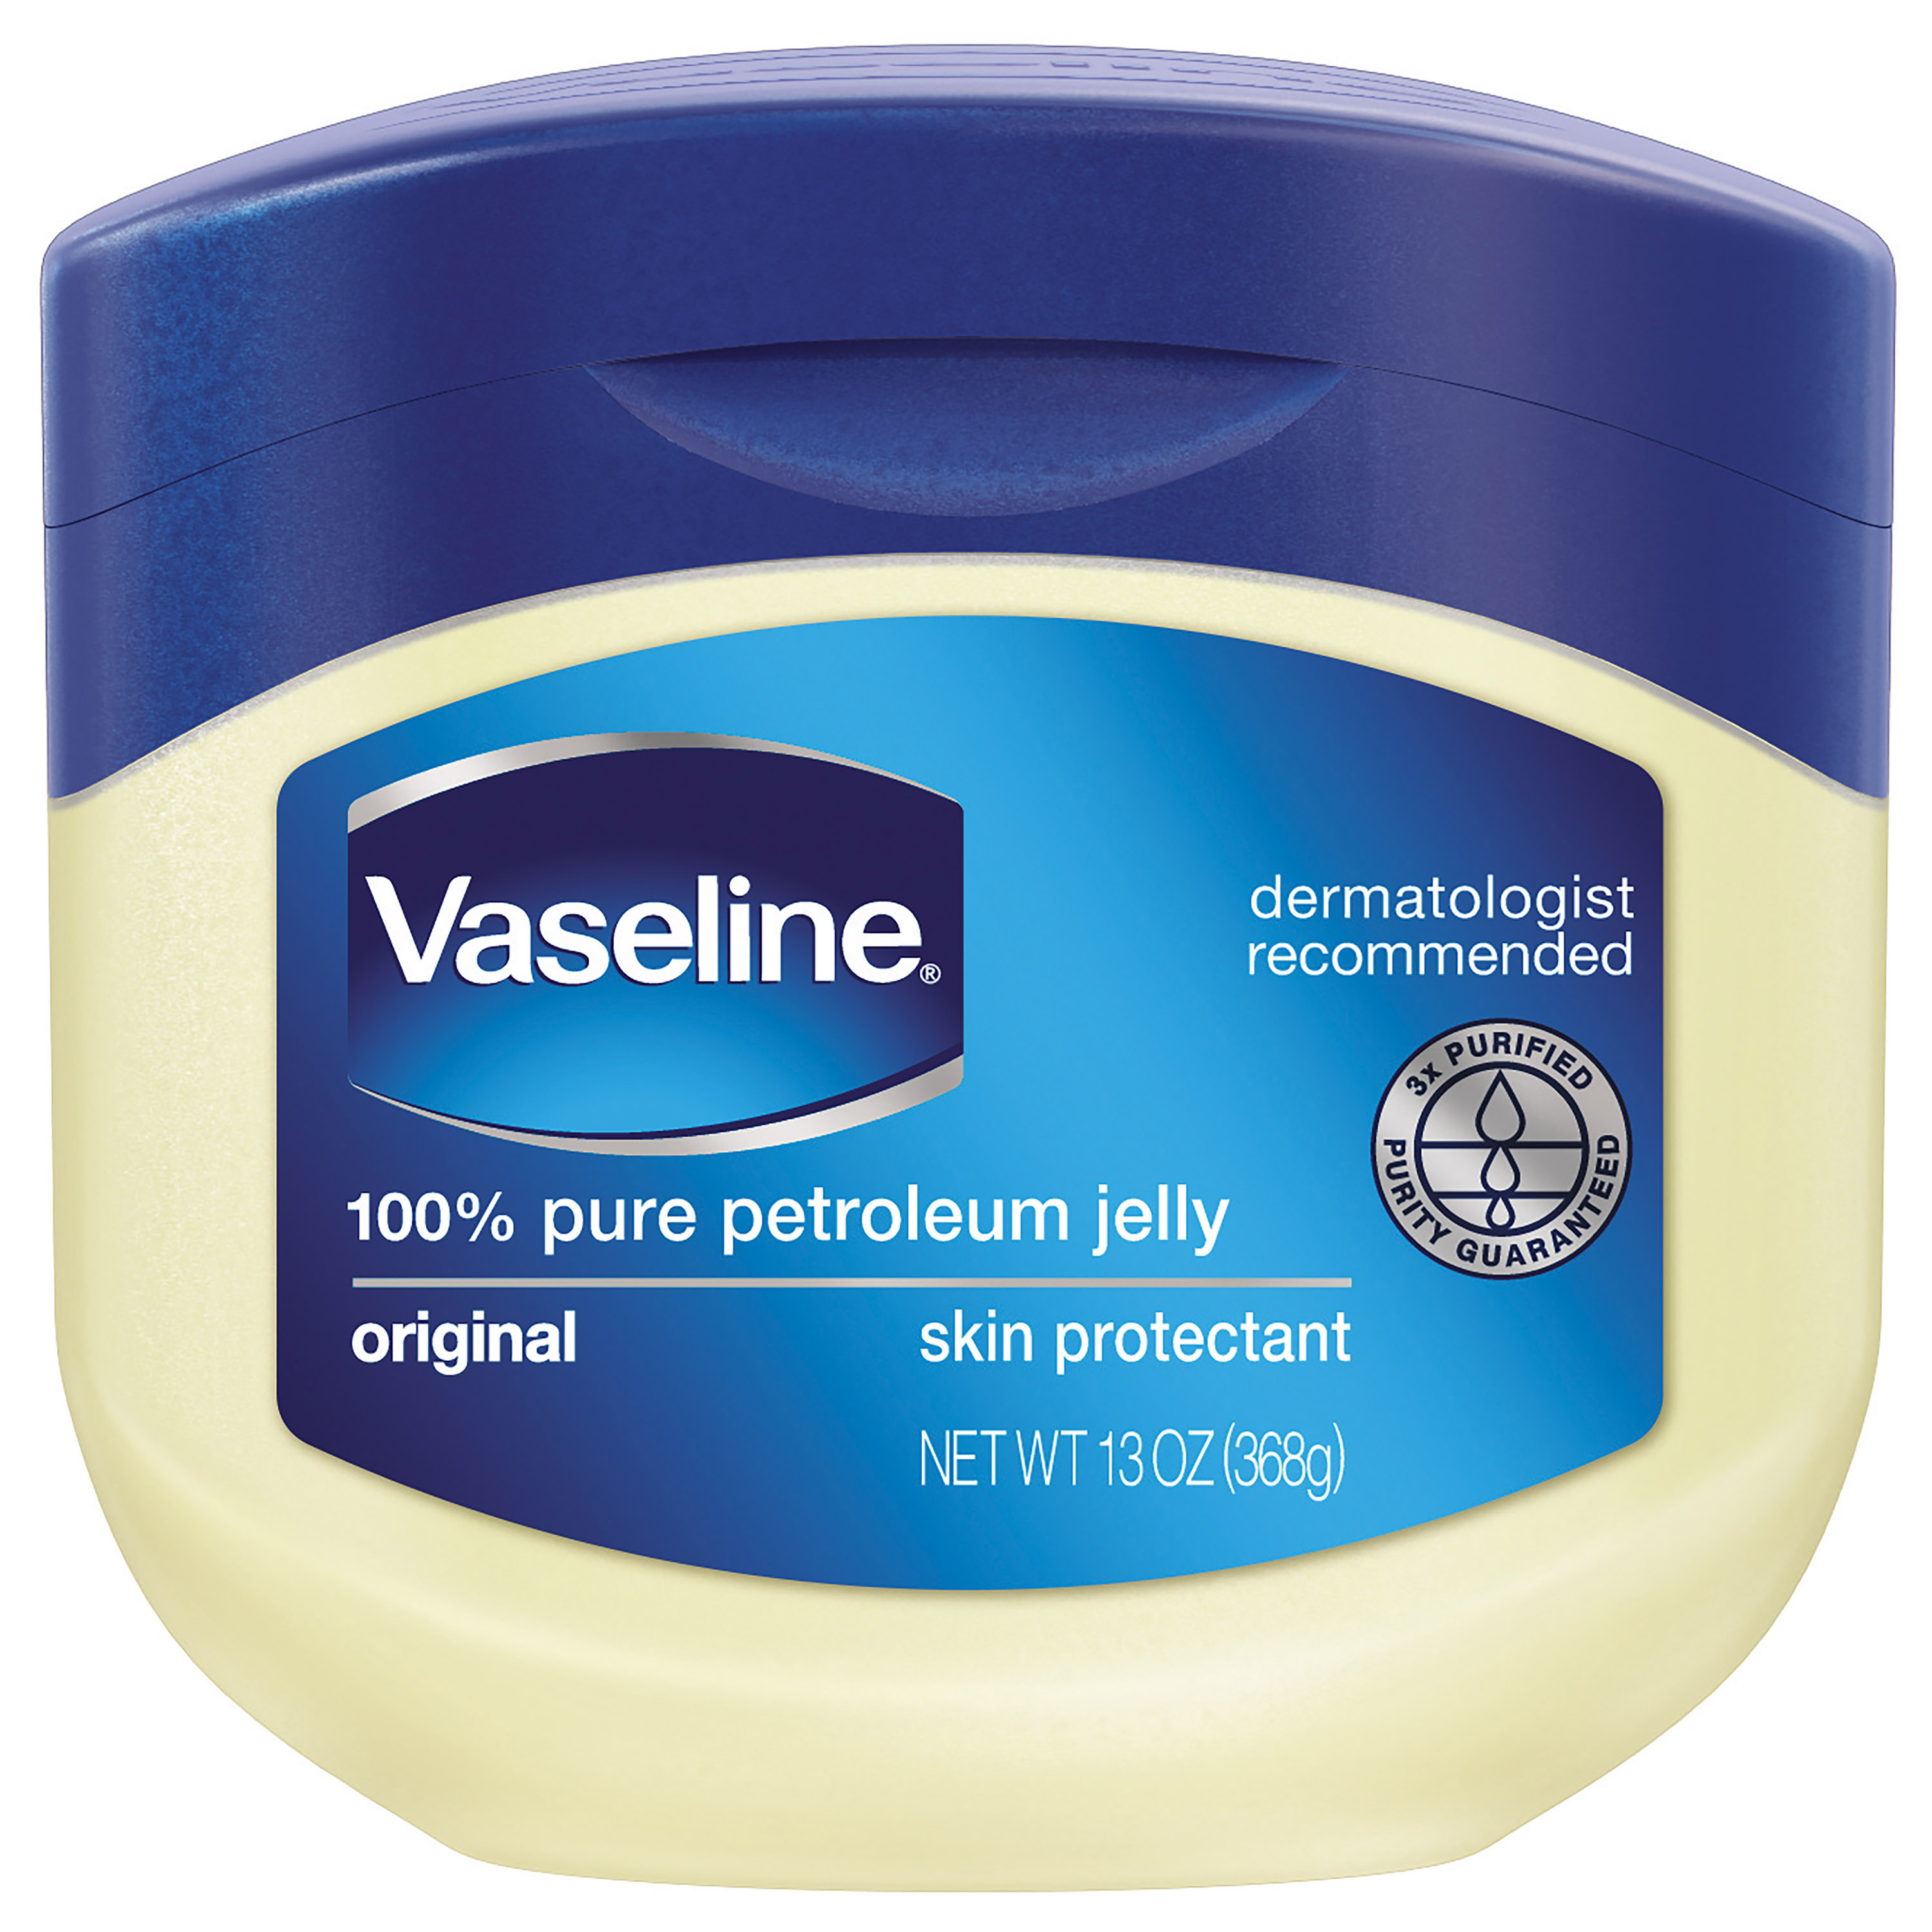 (2 pack) Vaseline Original Petroleum Jelly, 13 oz